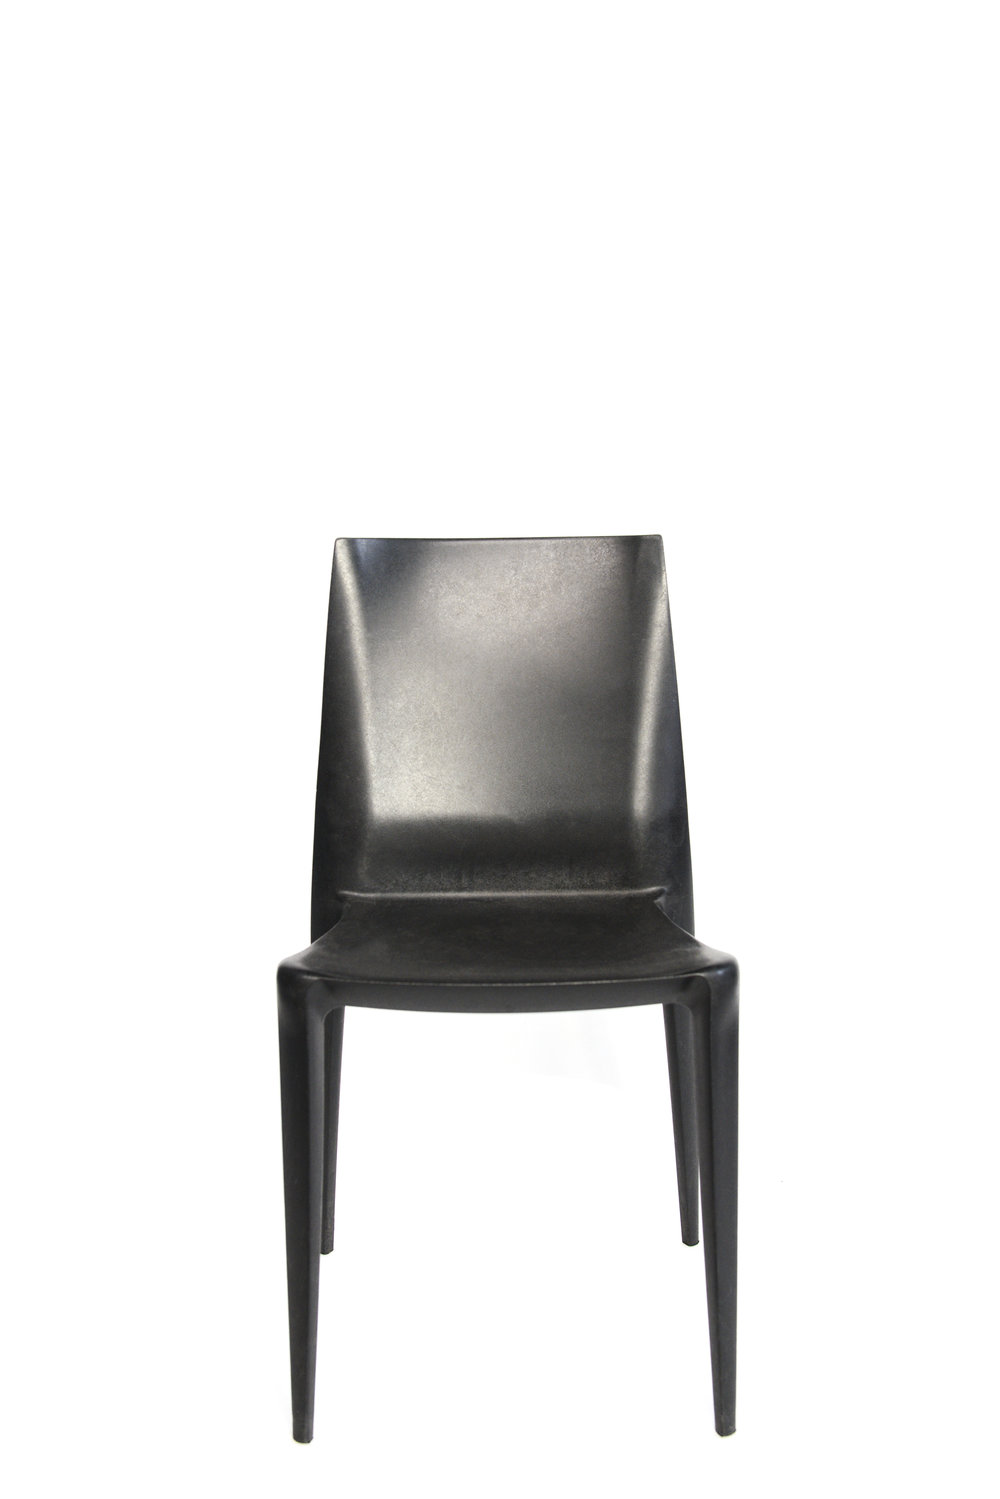 Black belini dining chairs qty. 12